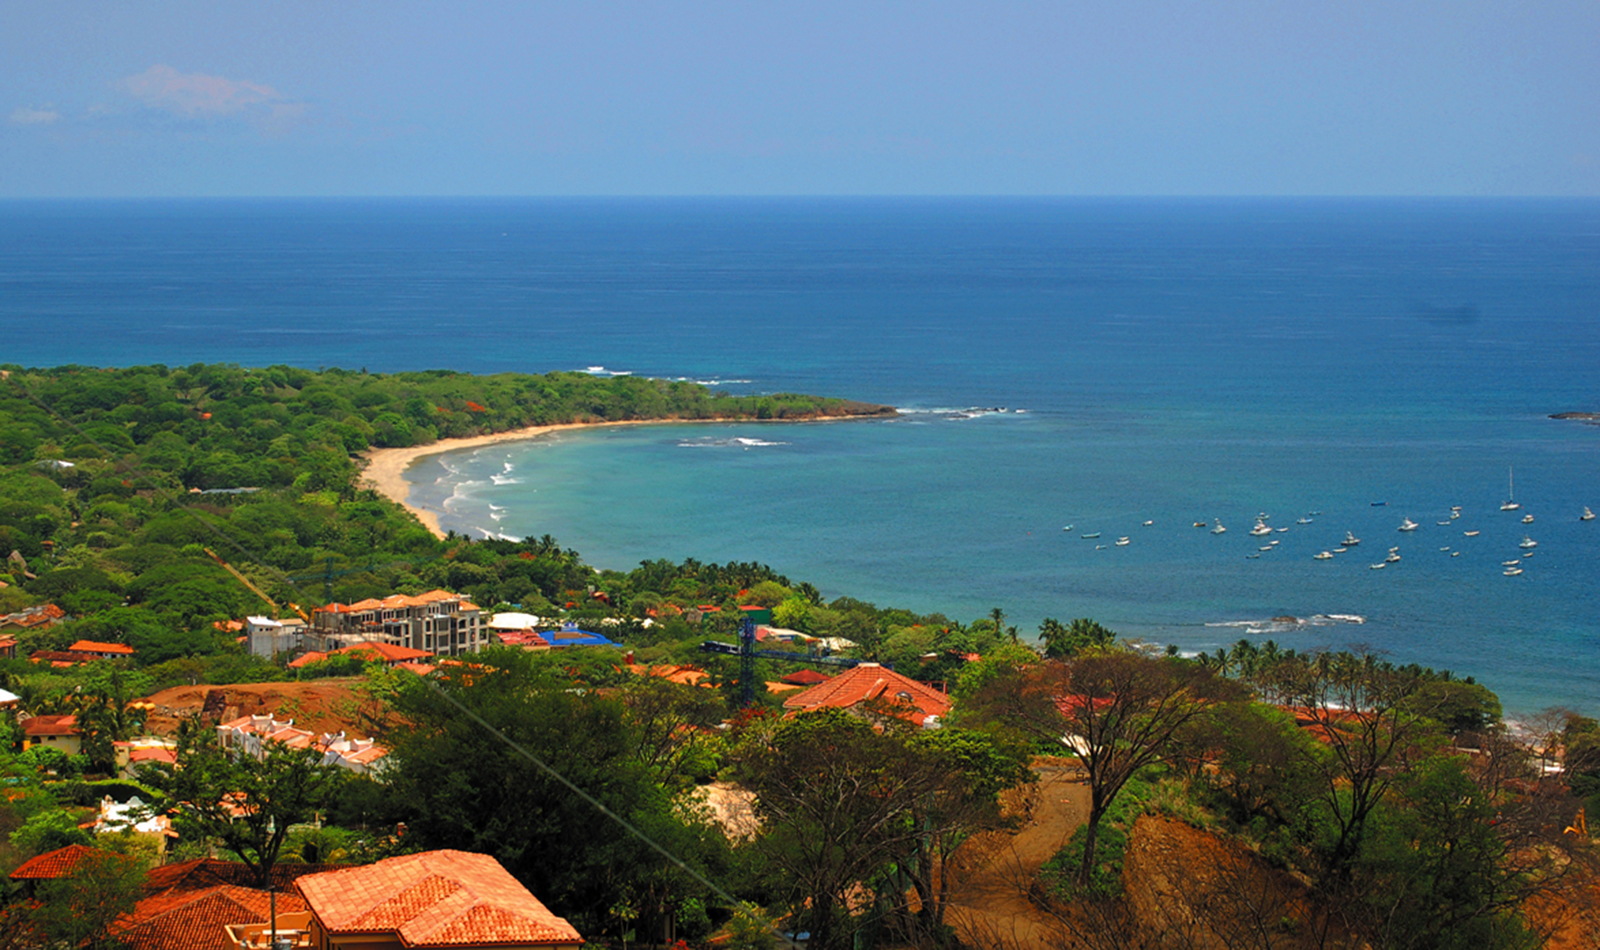 See the sites from above on a Costa Rica domestic flight with Desafio.